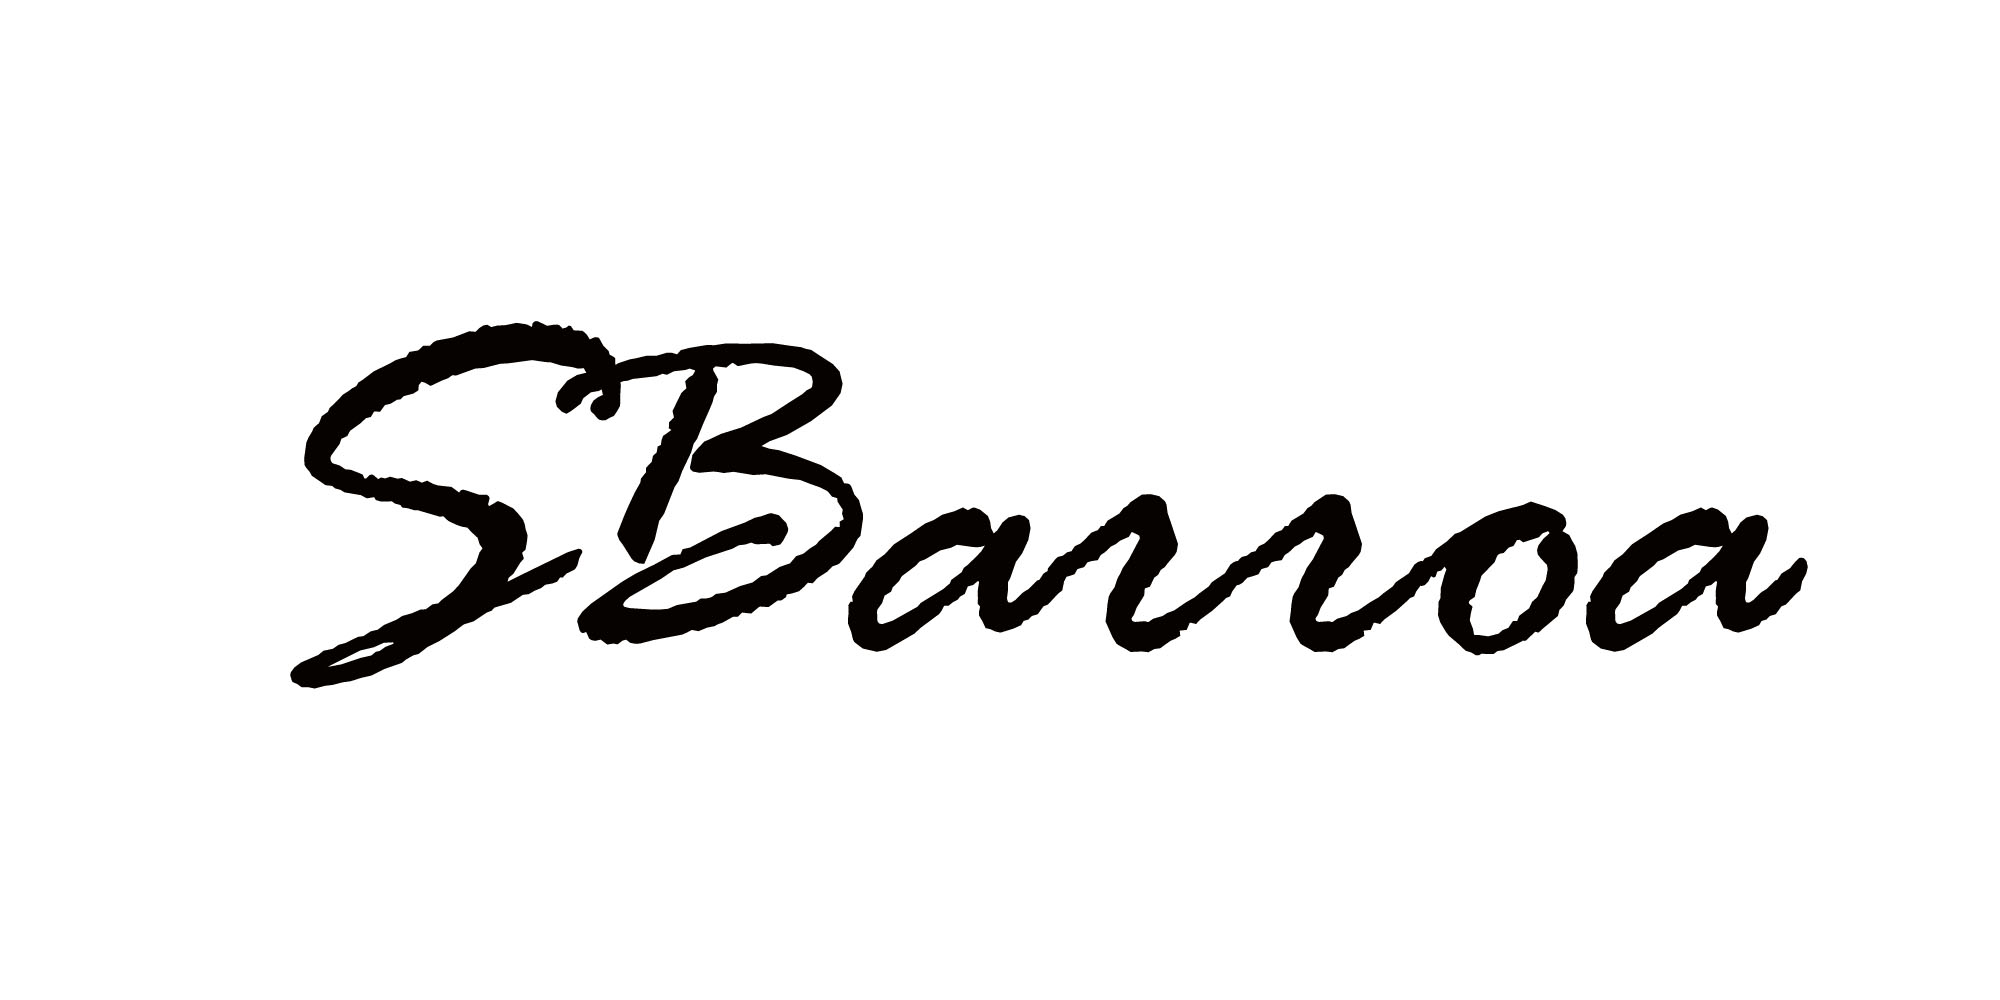 Solomon Barroa's Signature